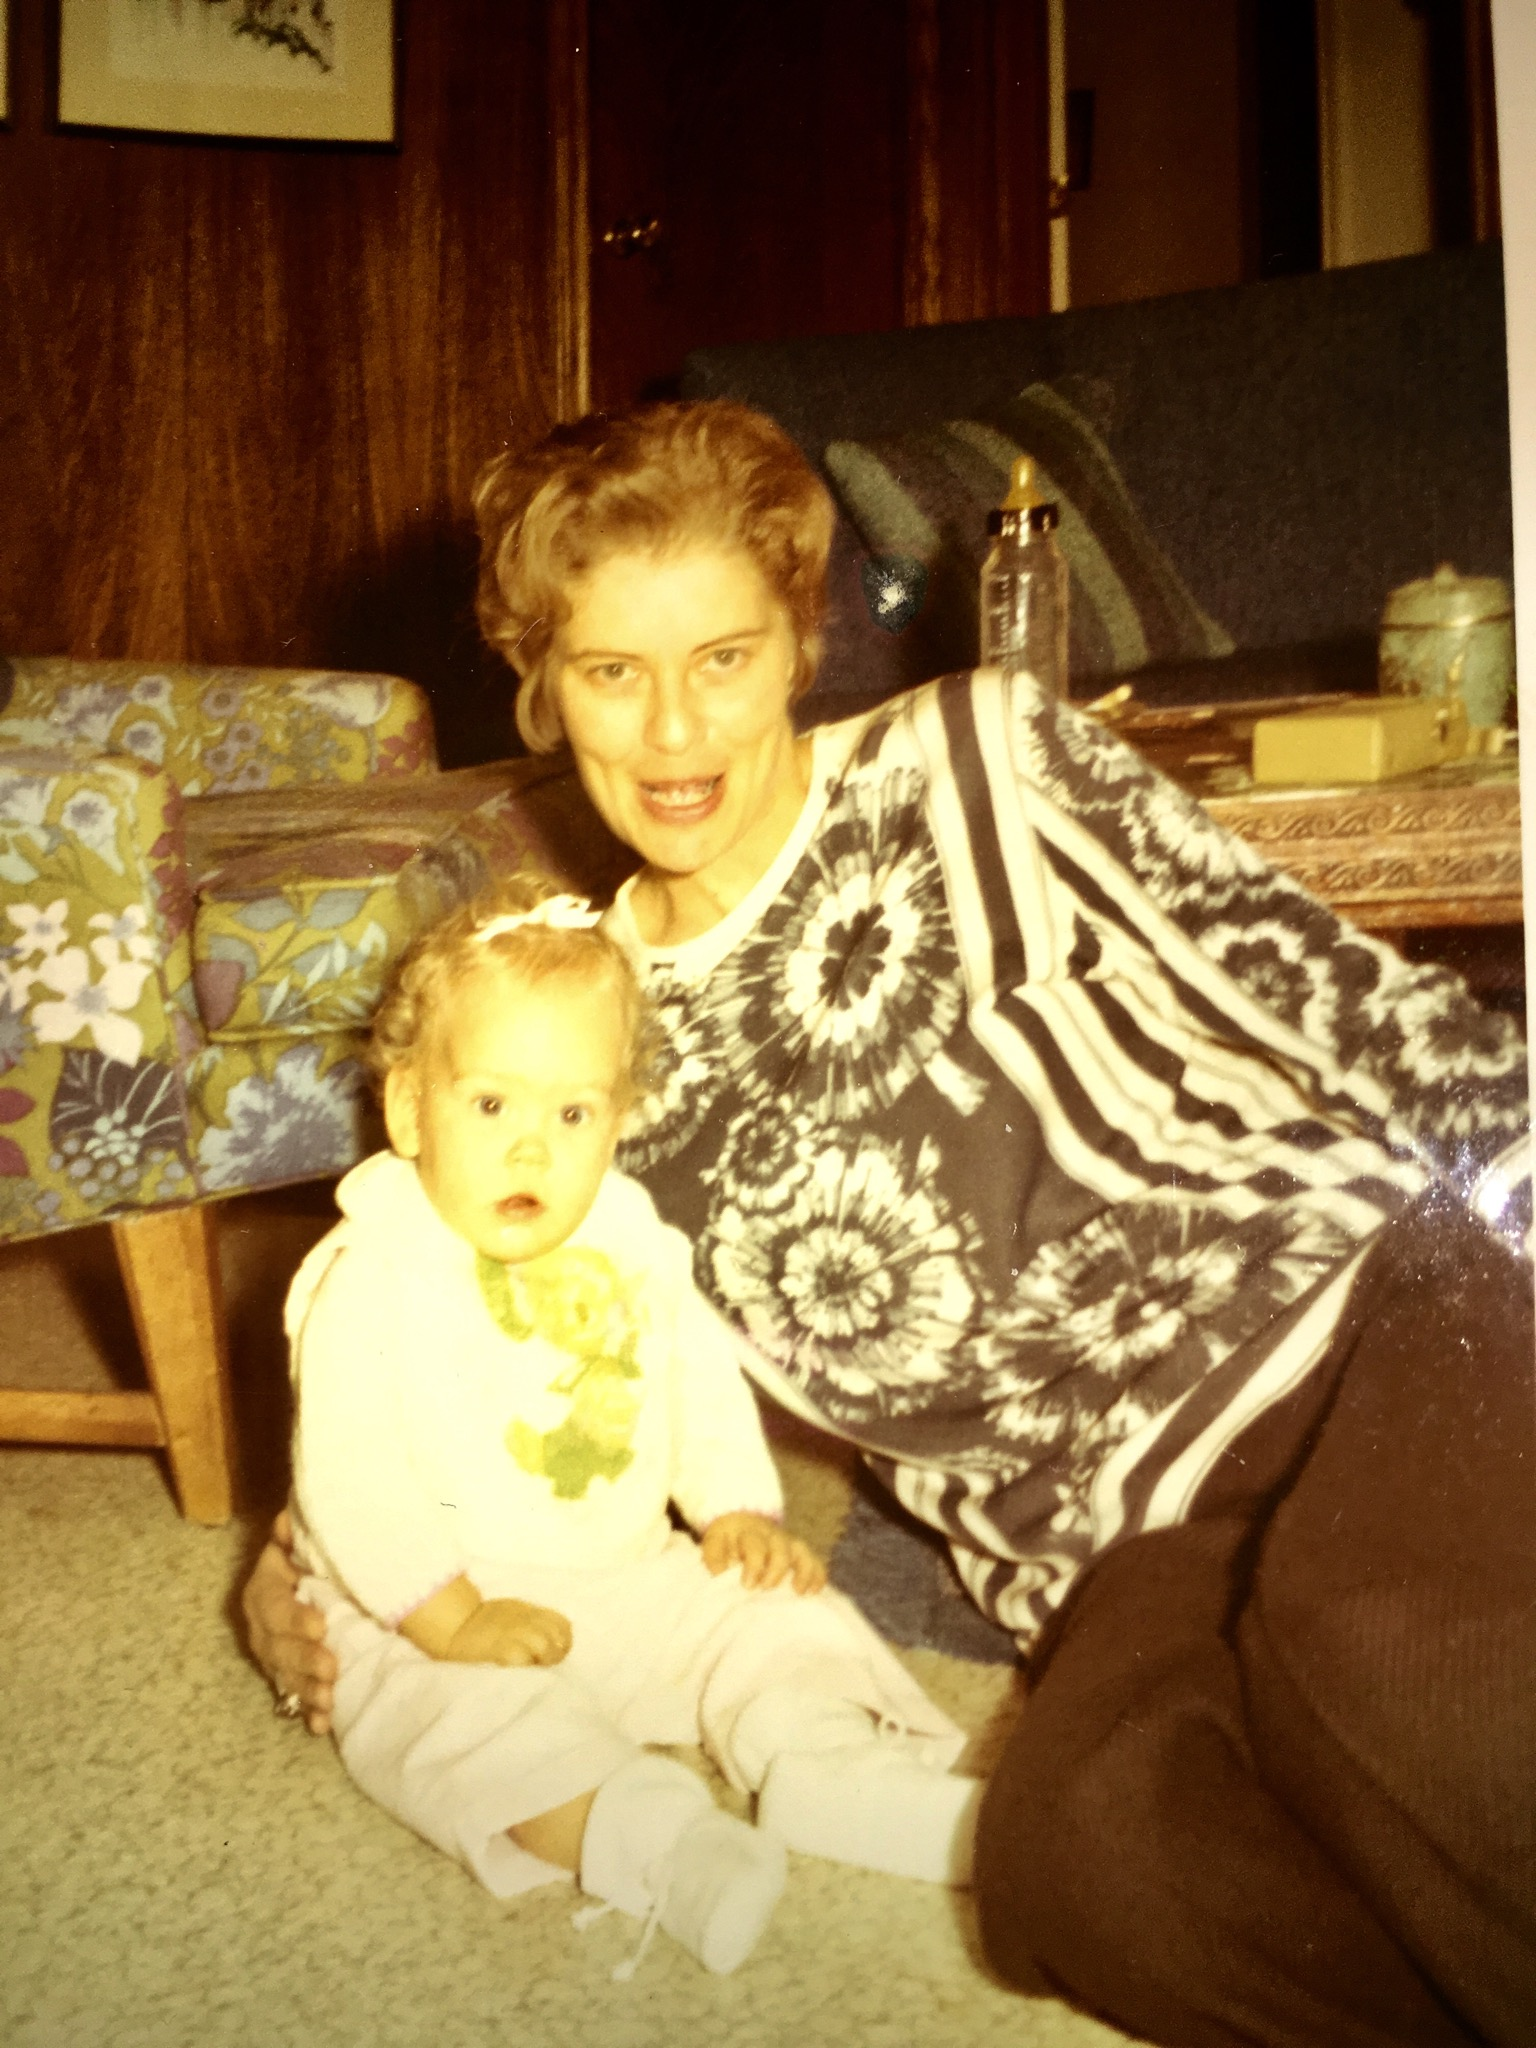 My lovely Aunt Jackie will be missed....she was so fun&sweet-always made us laugh in joy!RIP Aunt J<br /> We love you!!!!<br /> (Pic is Aunt J&me!)